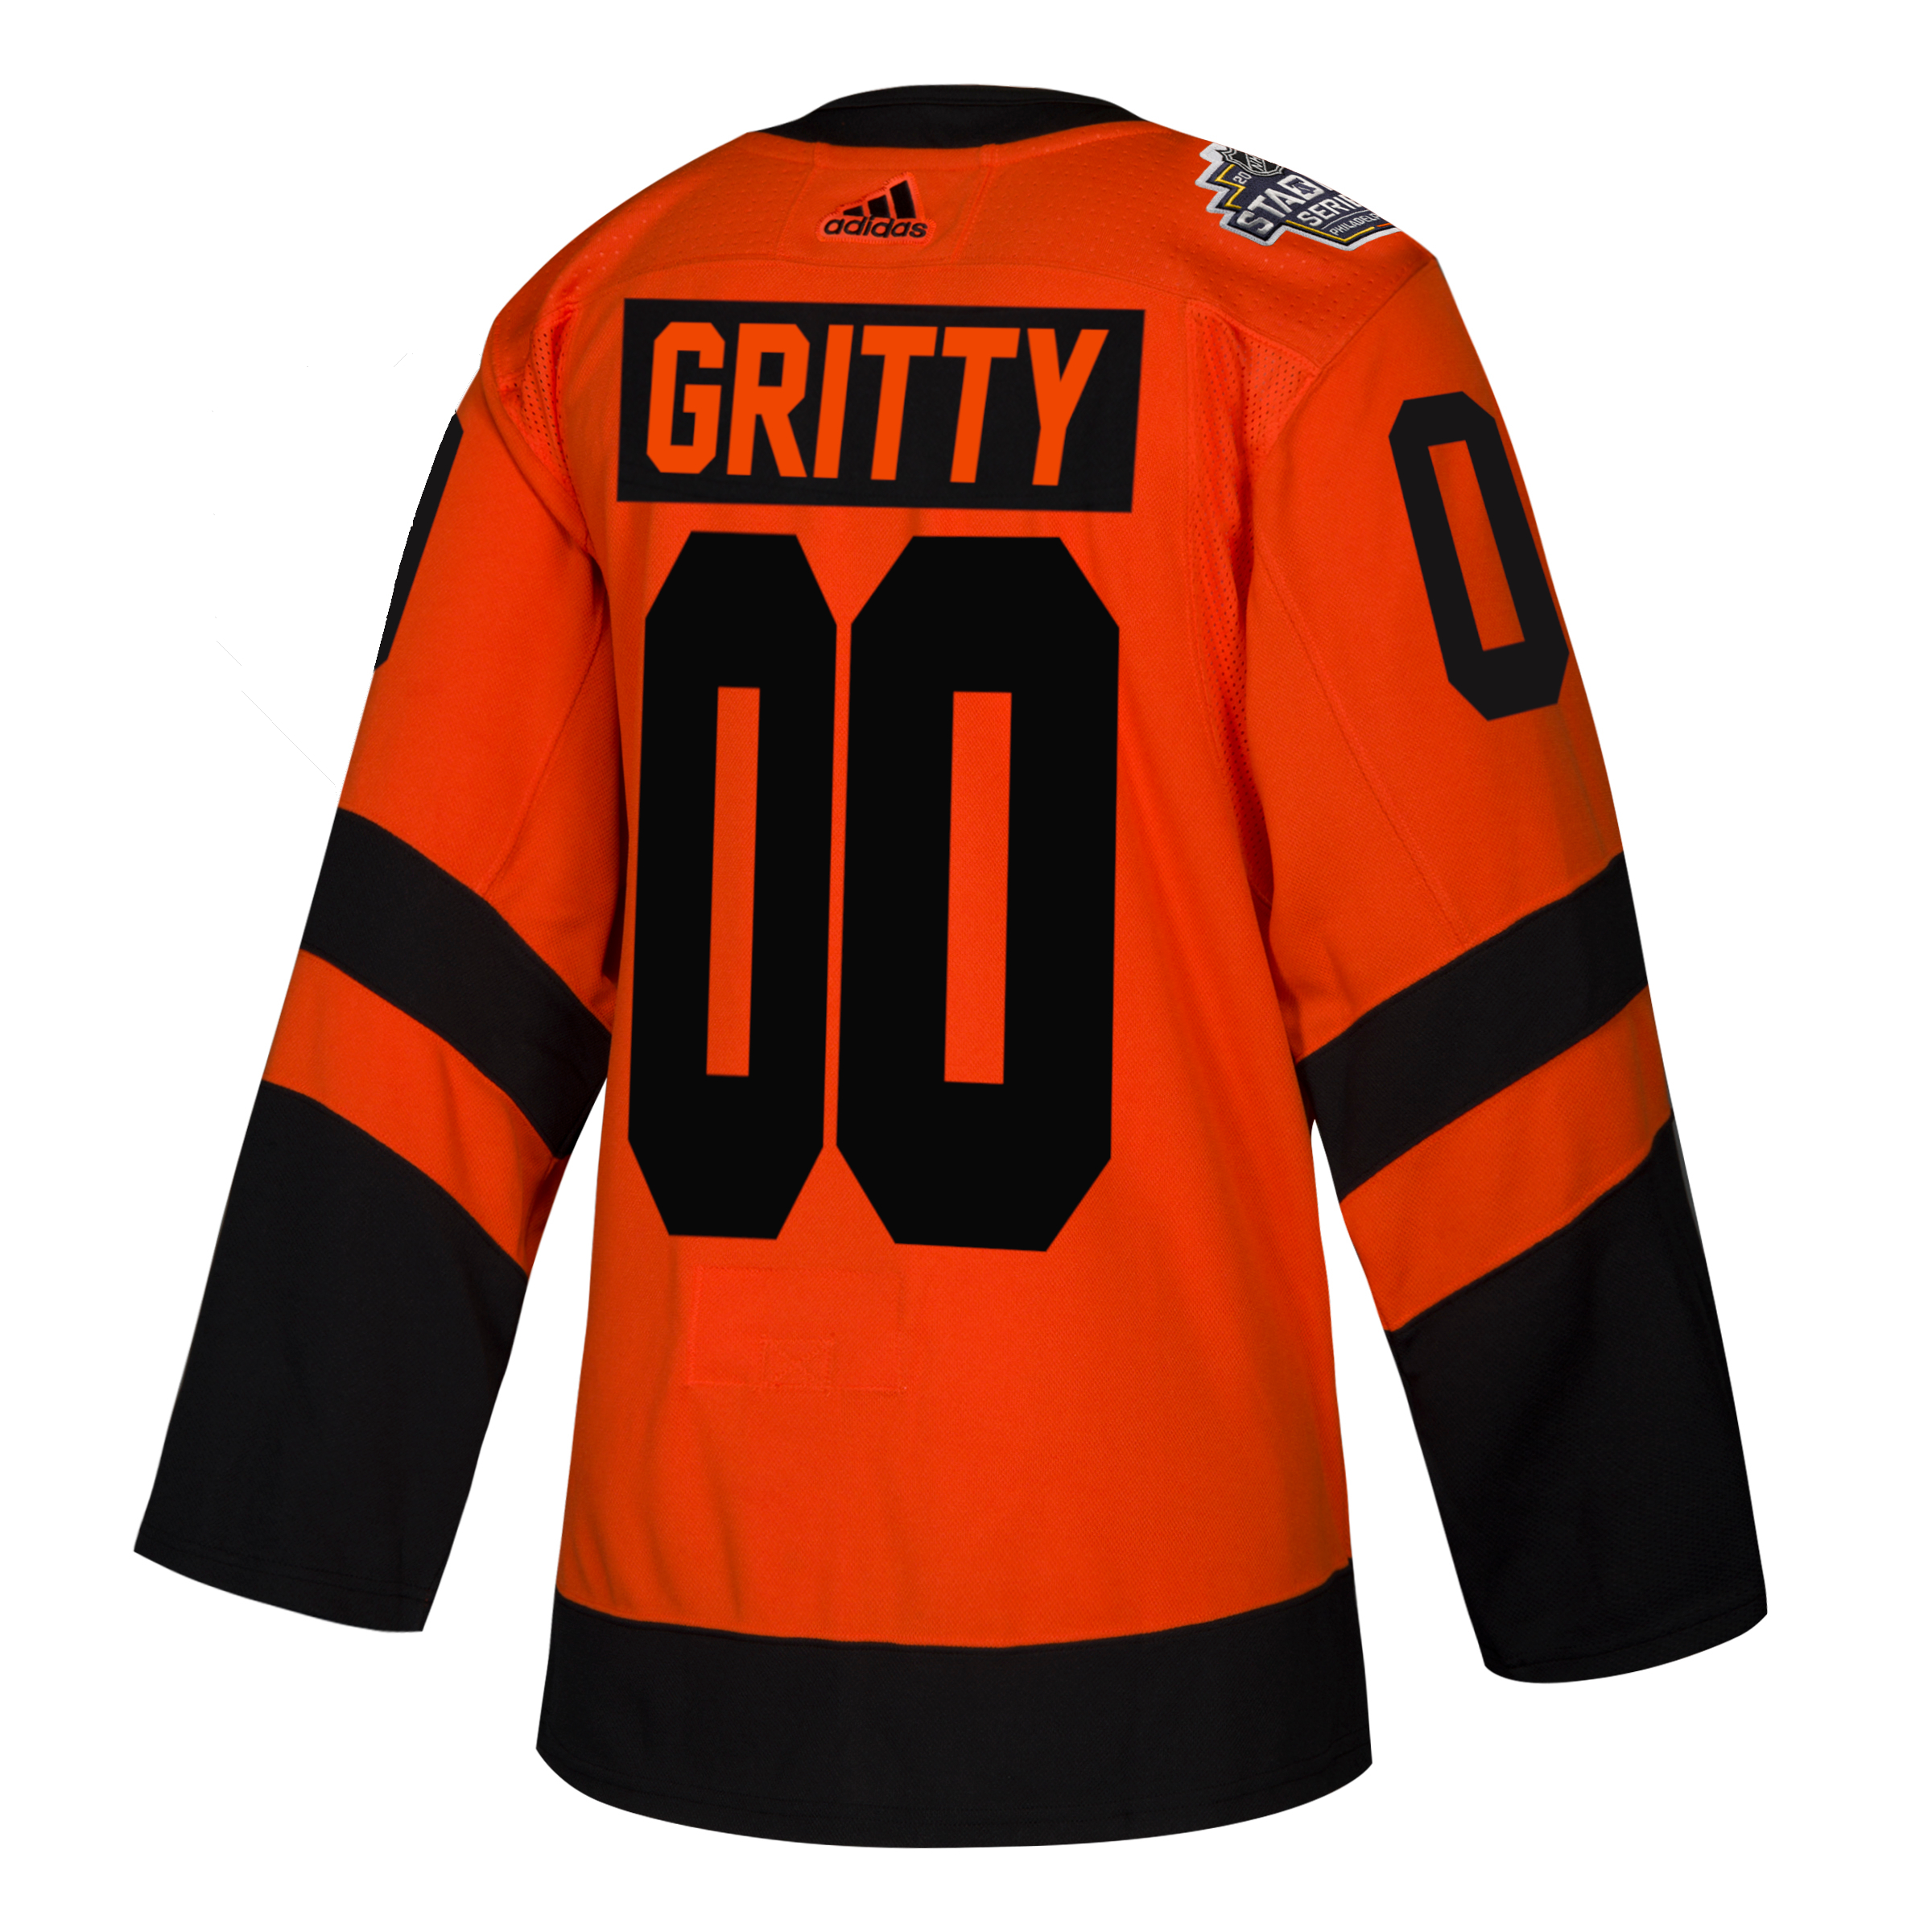 Philadelphia Flyers Men s 2019 Stadium Series Gritty Jersey by Adidas 95a173bf1